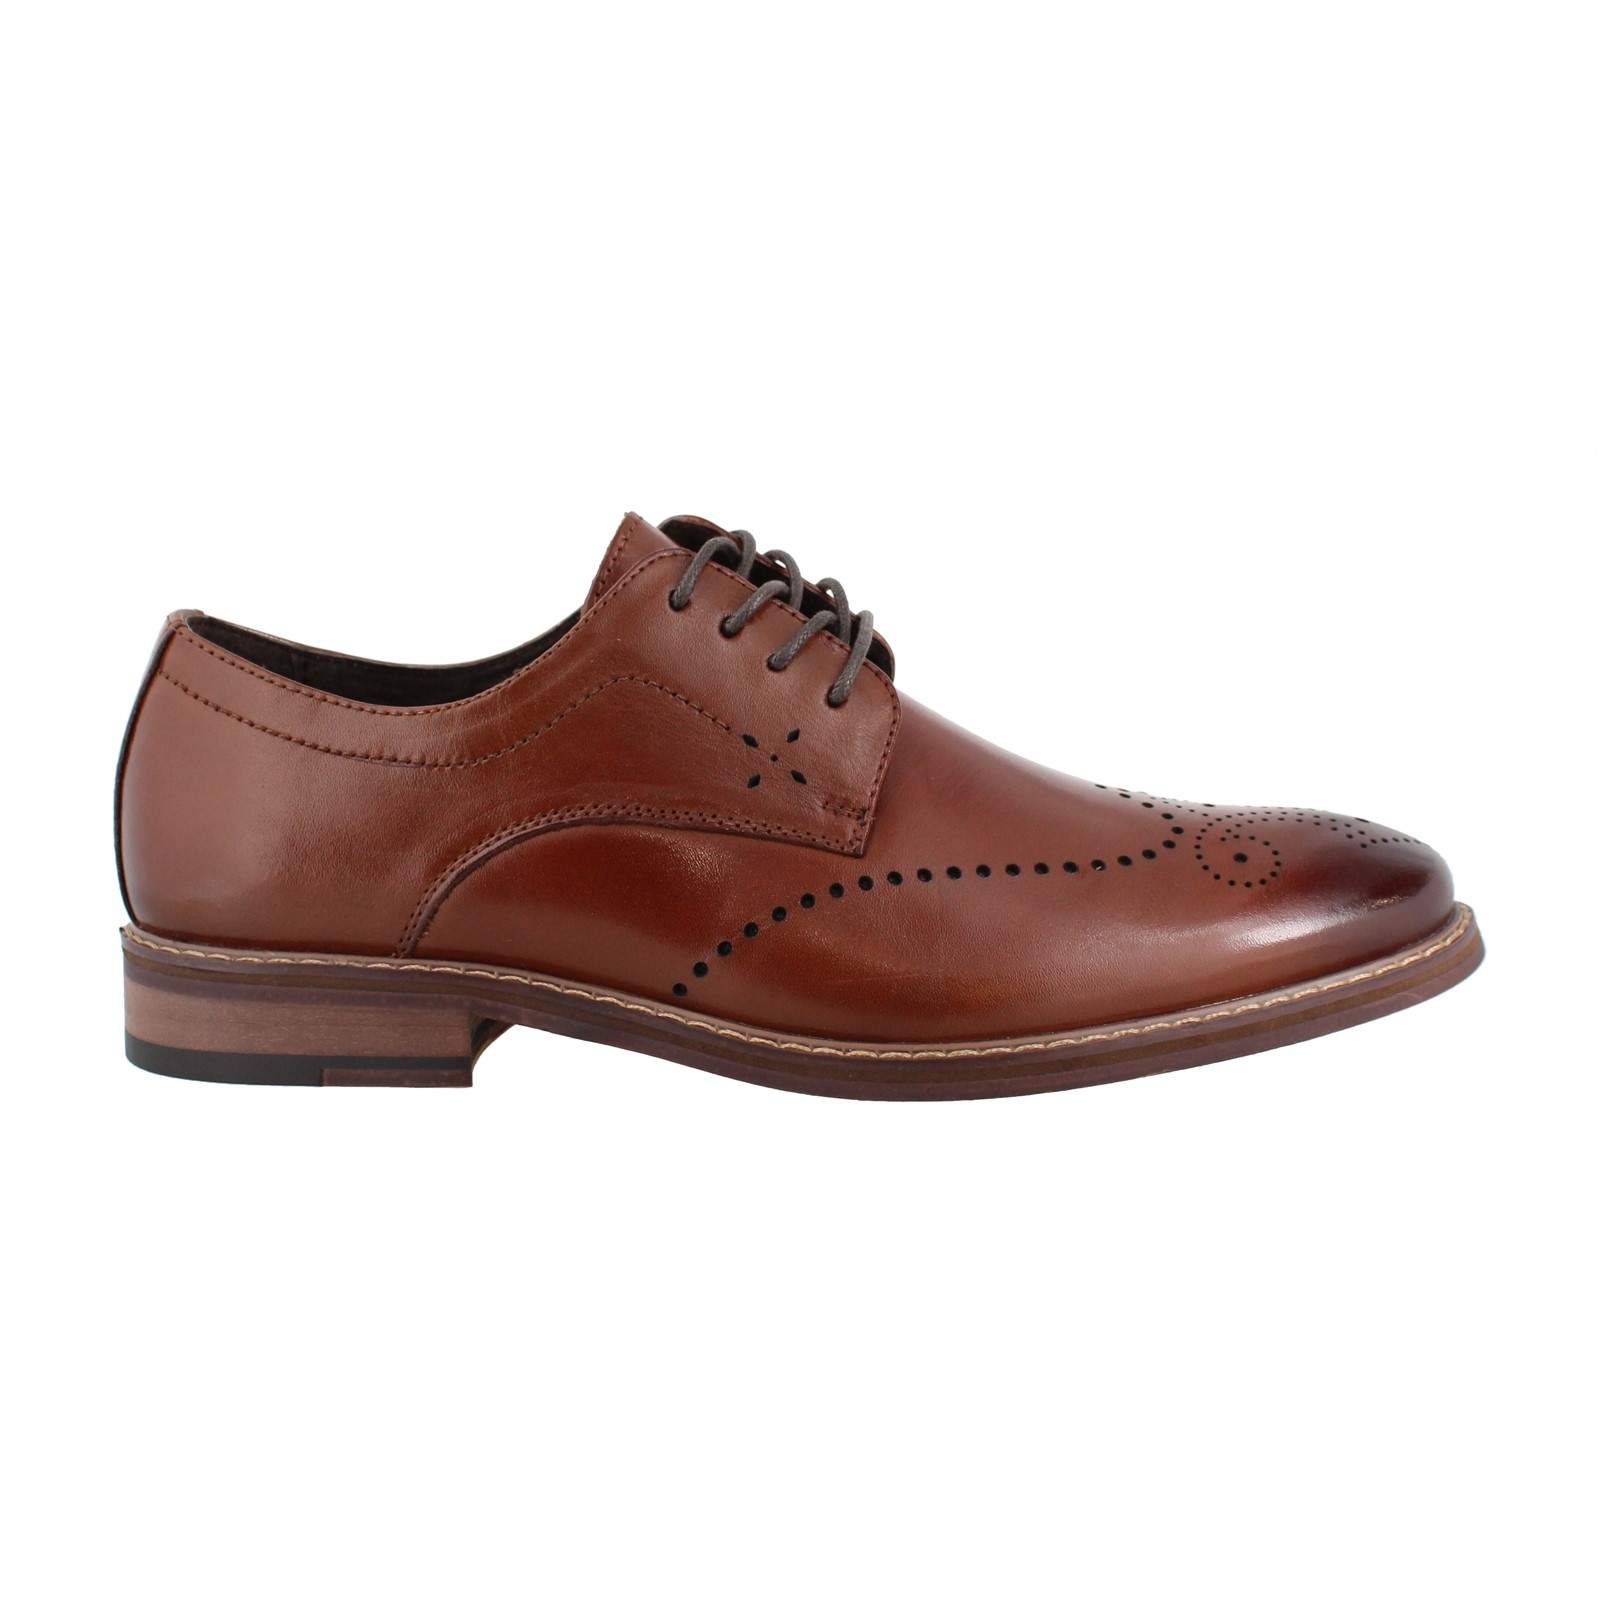 Men's Stacy Adams, Alaire Wingtip Oxford